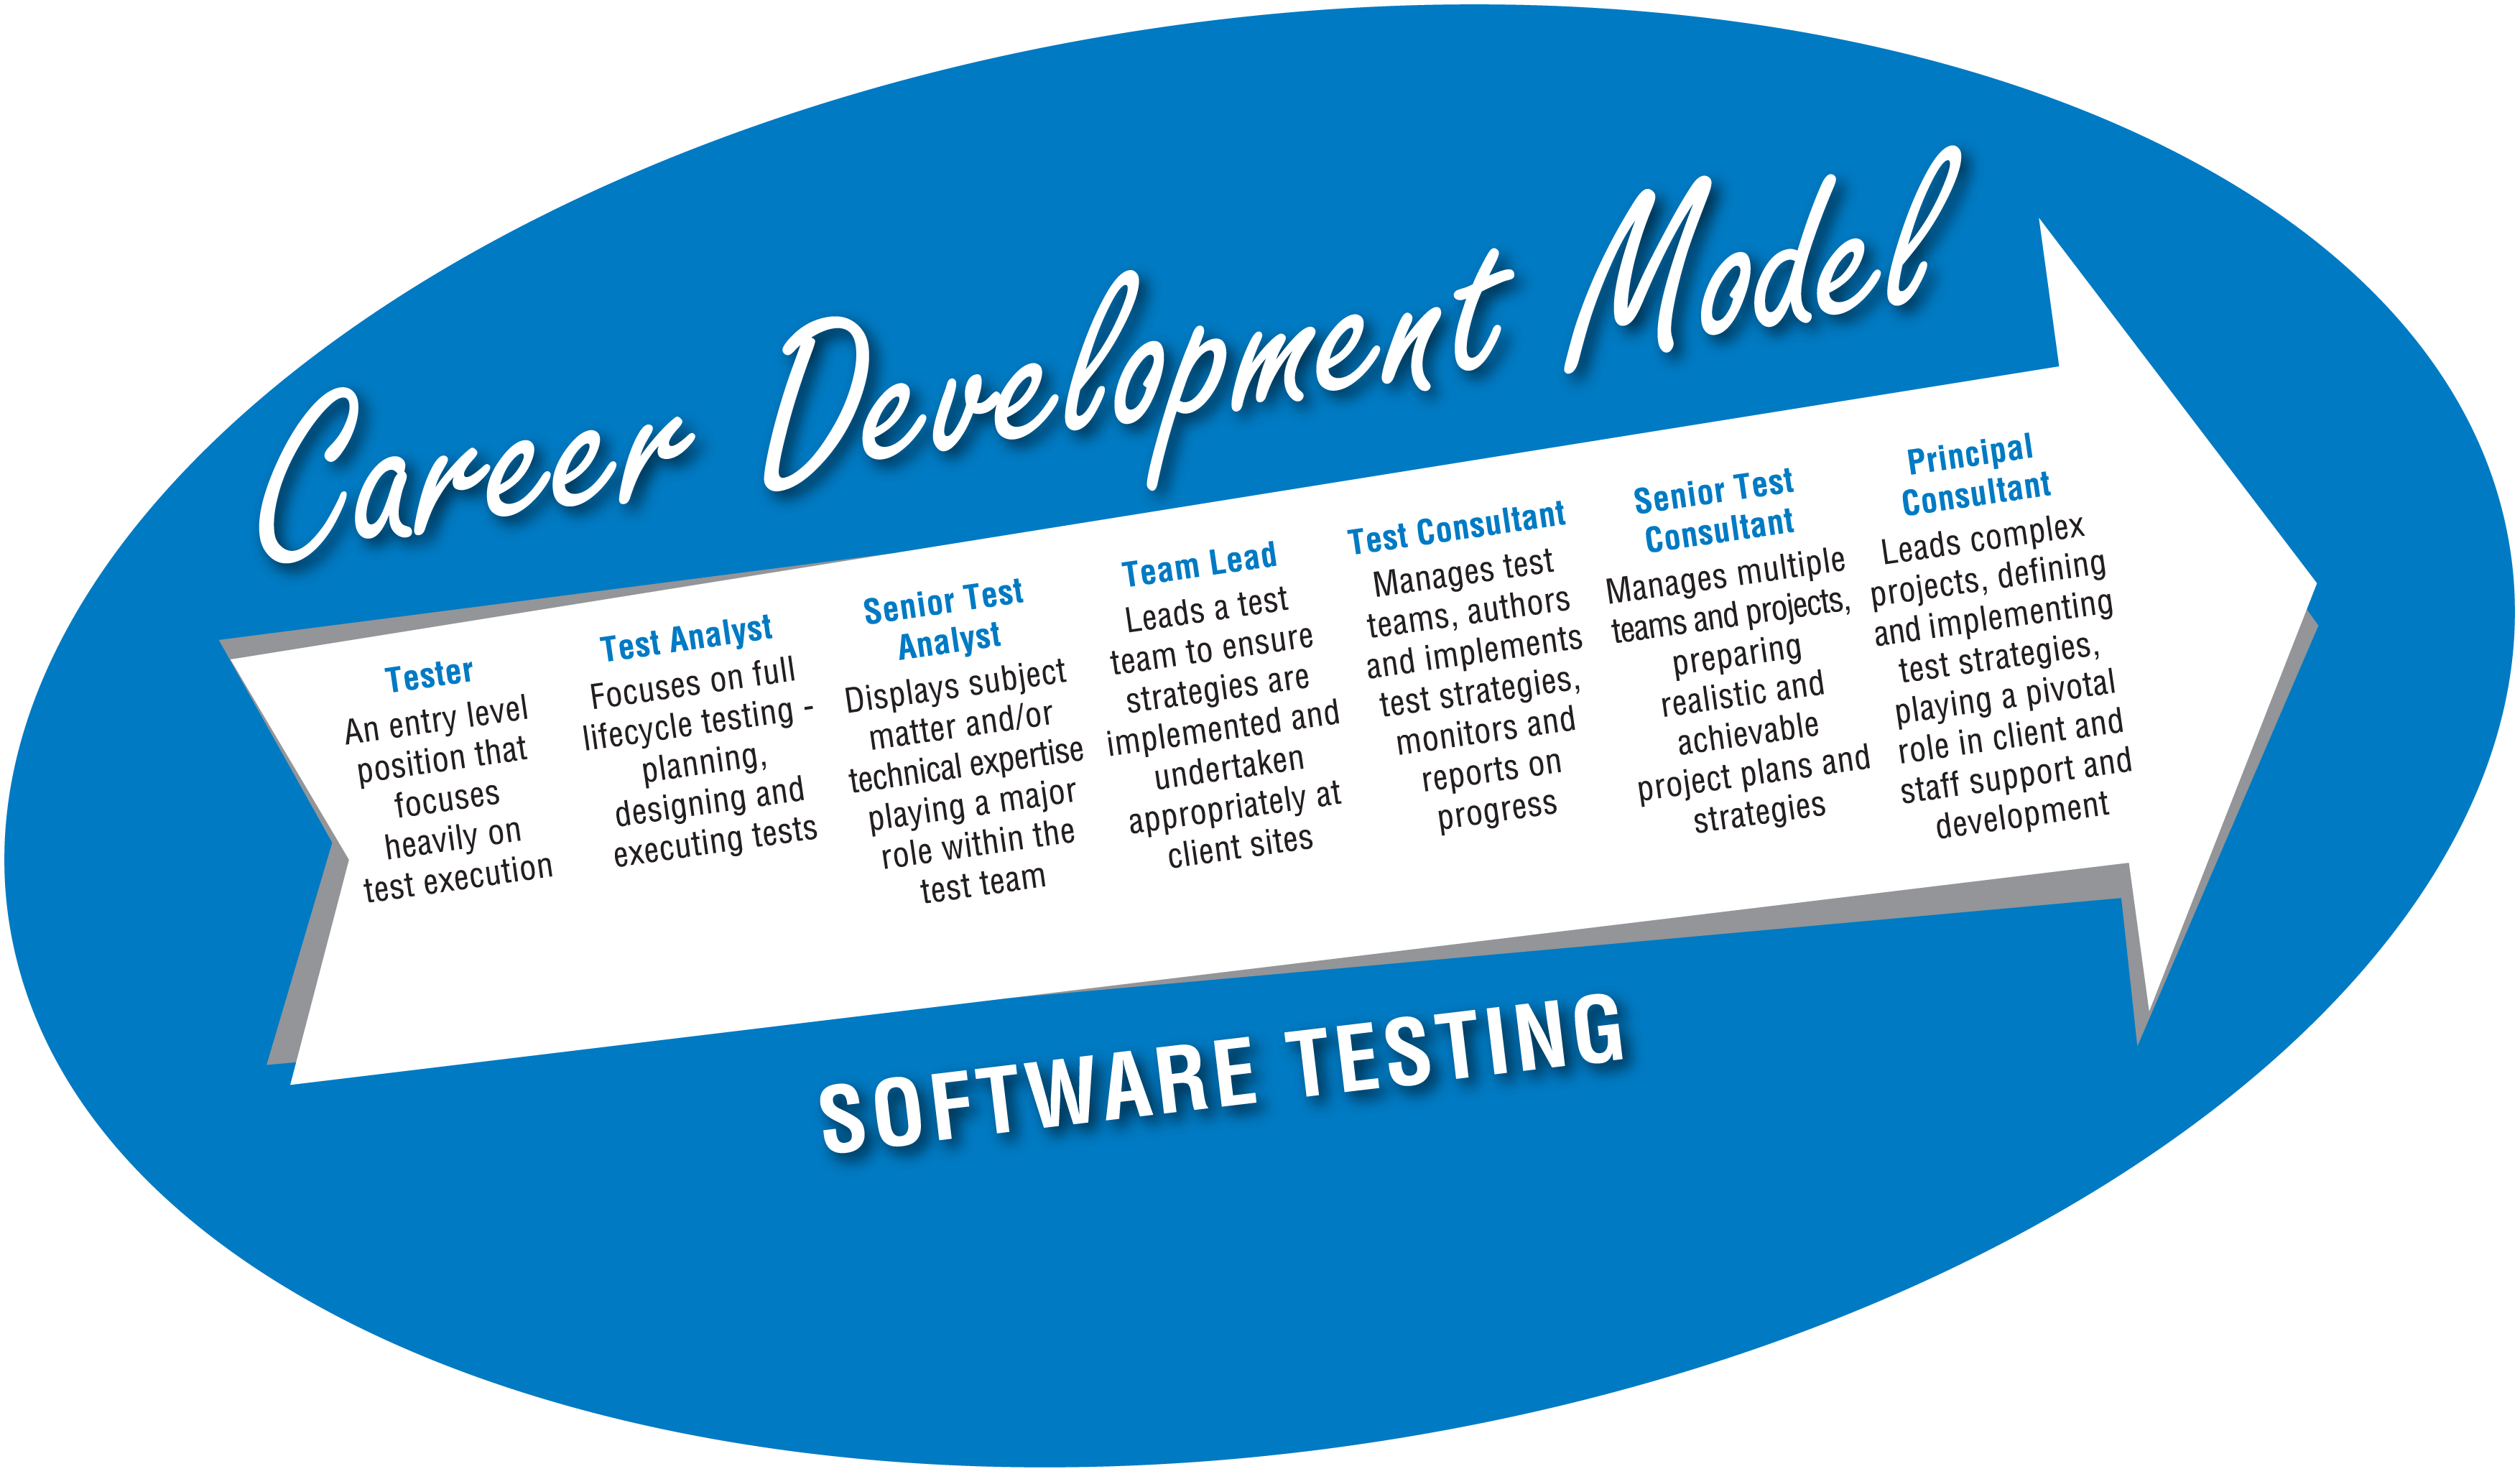 planit career development model career path for testers career planit career development model career path for testers